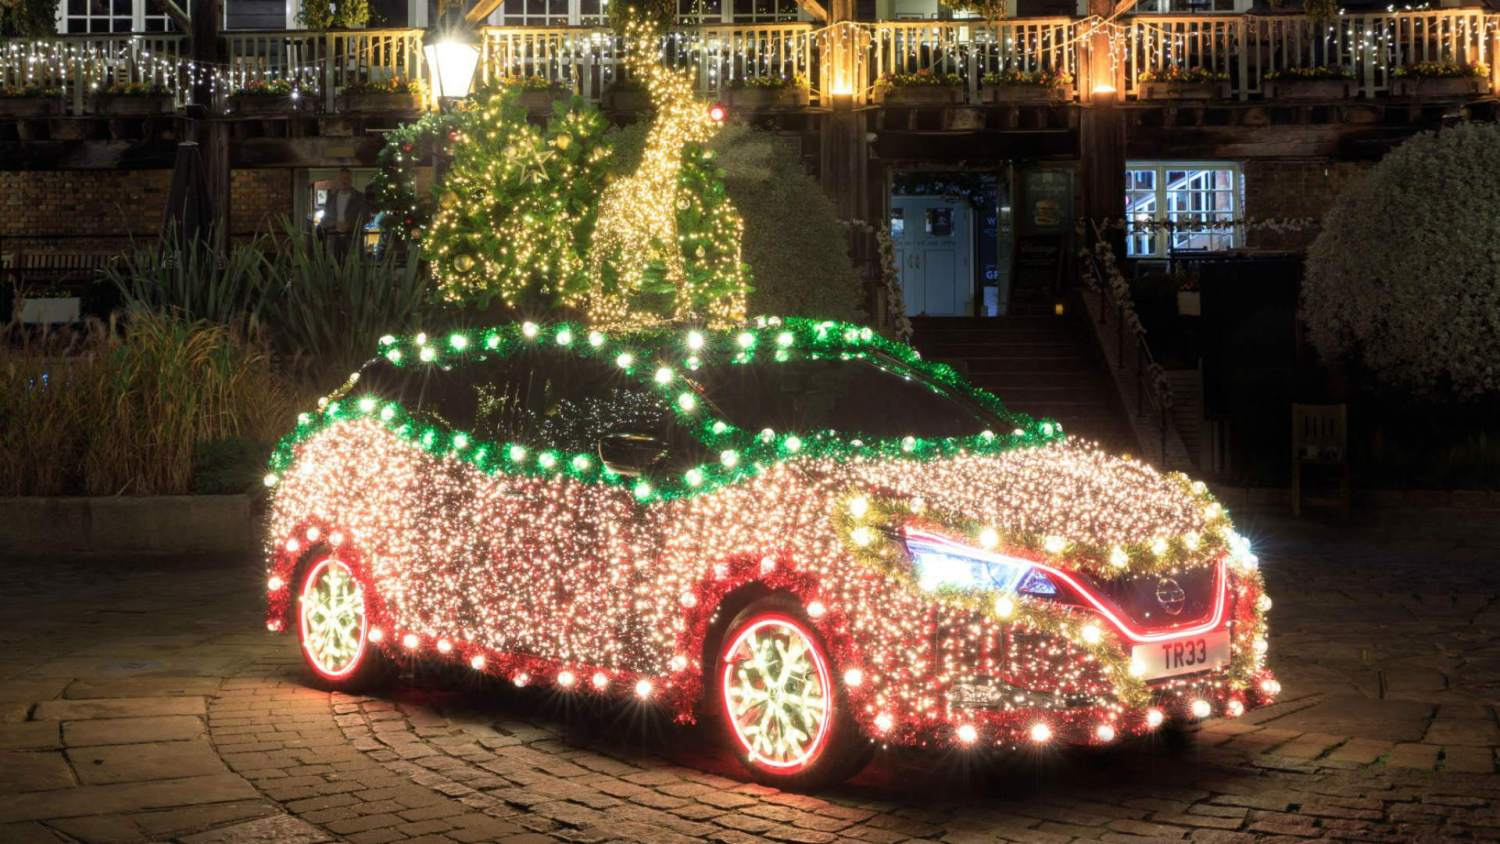 Nissan Leaf Christmas tree